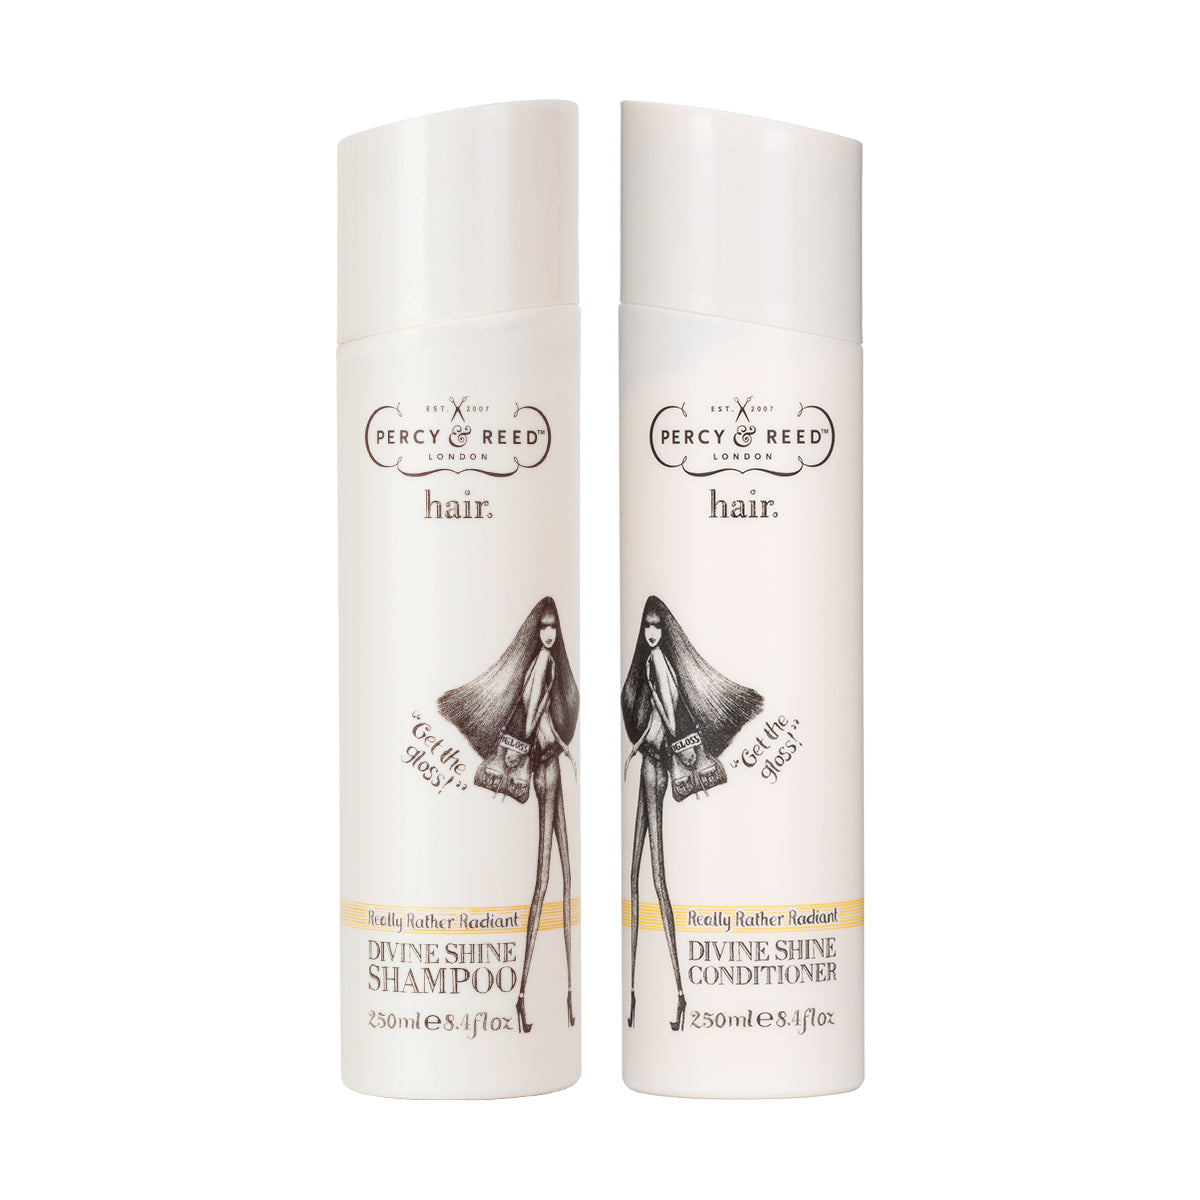 Percy & Reed Really Rather Radiant Divine Shine Shampoo and Conditioner Bundle